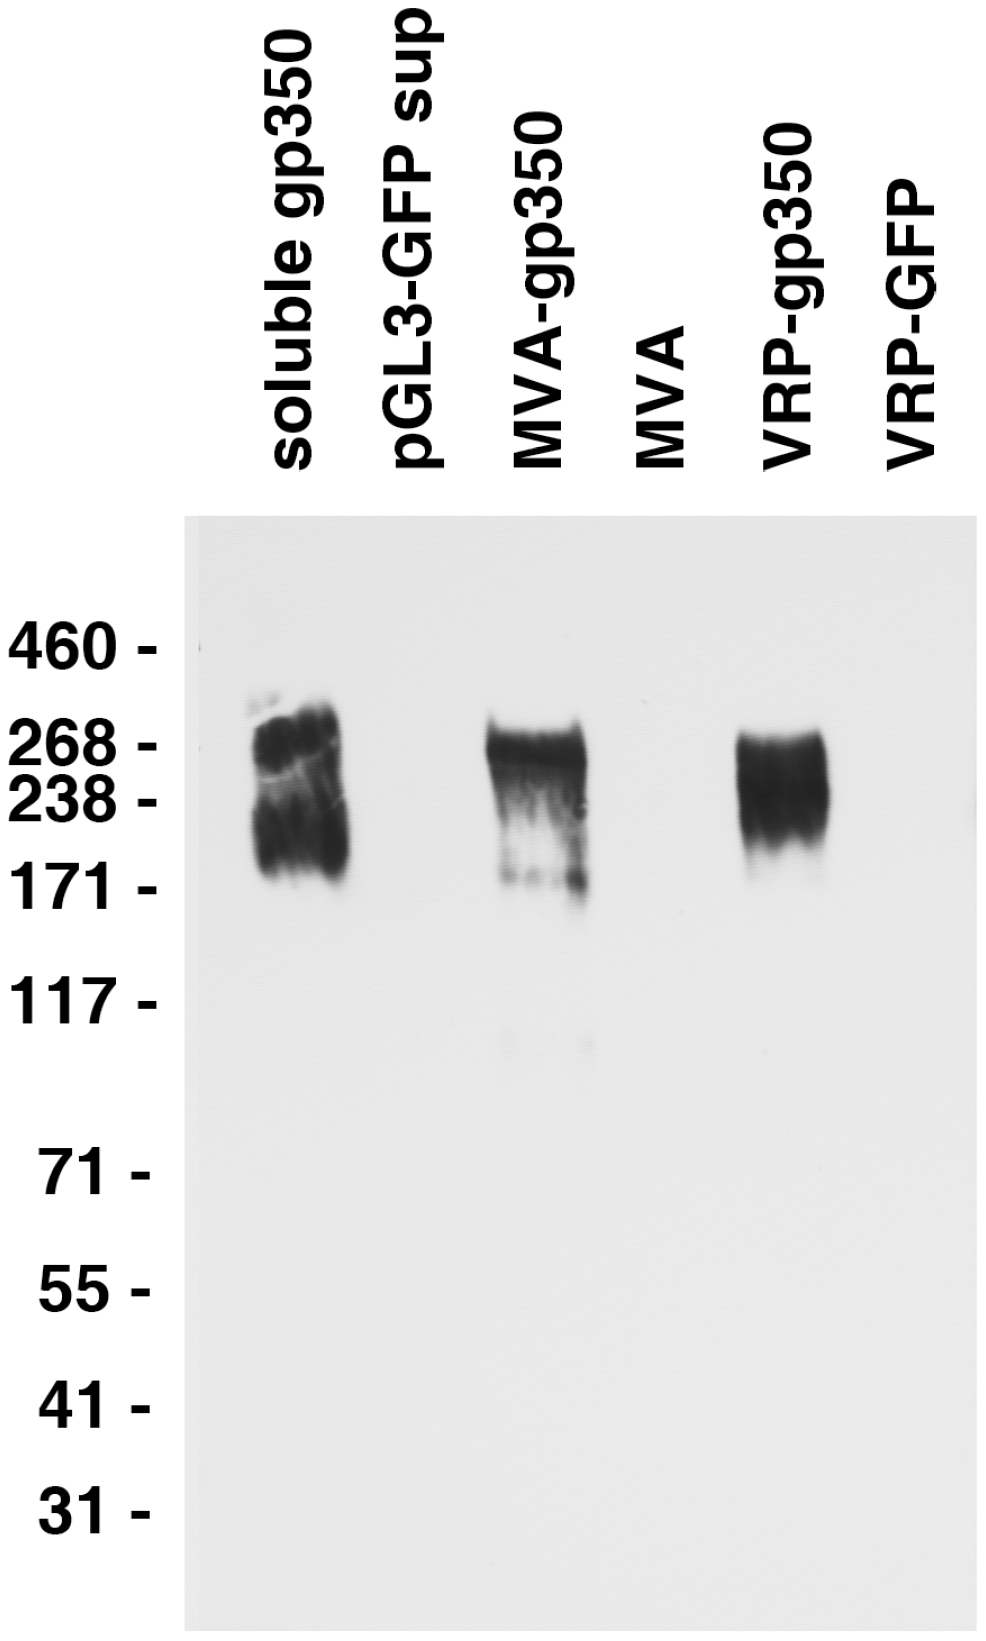 Detection of gp350 in supernatant from cells transfected with a plasmid expressing soluble gp350, lysate from DF-1 cells infected with MVA-gp350, and lysate from Vero cells infected with VRP-gp350.